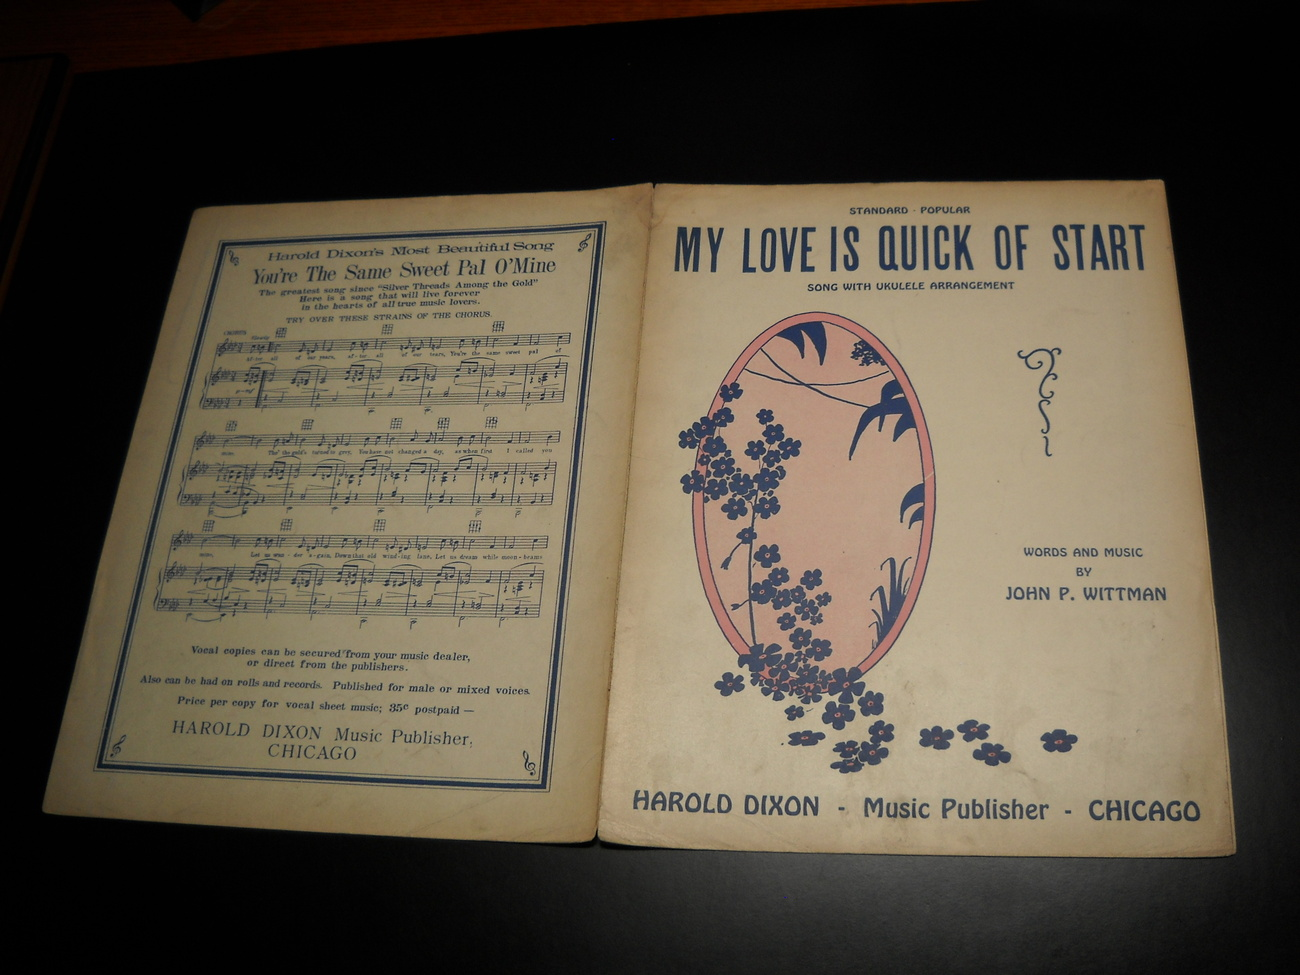 Sheet_music_my_love_is_quick_of_start_john_p_whitman_1931_harold_dixon_04